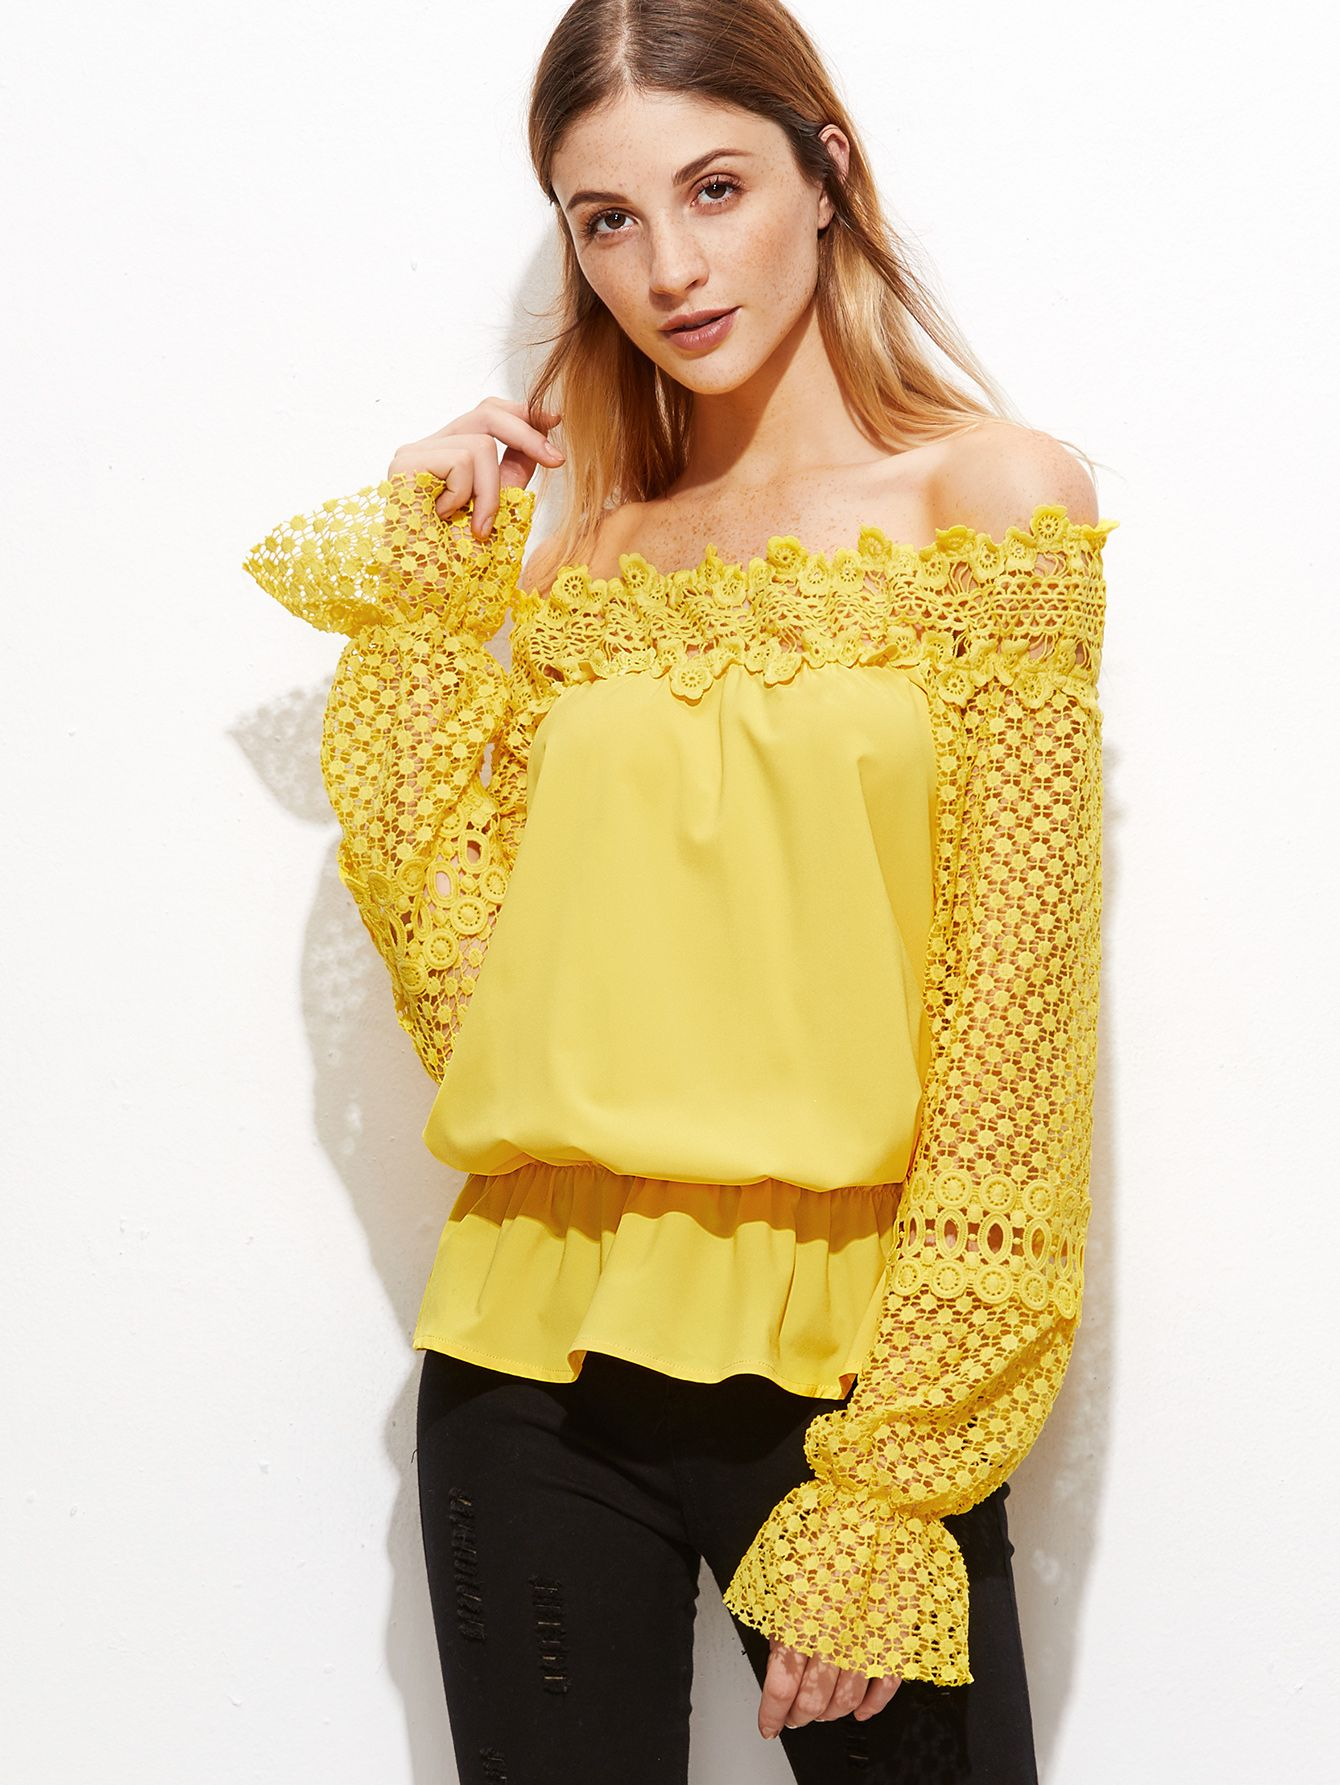 2b2867c54d25 Shop Yellow Off The Shoulder Crochet Sleeve Blouse online. SheIn offers Yellow  Off The Shoulder Crochet Sleeve Blouse   more to fit your fashionable needs.